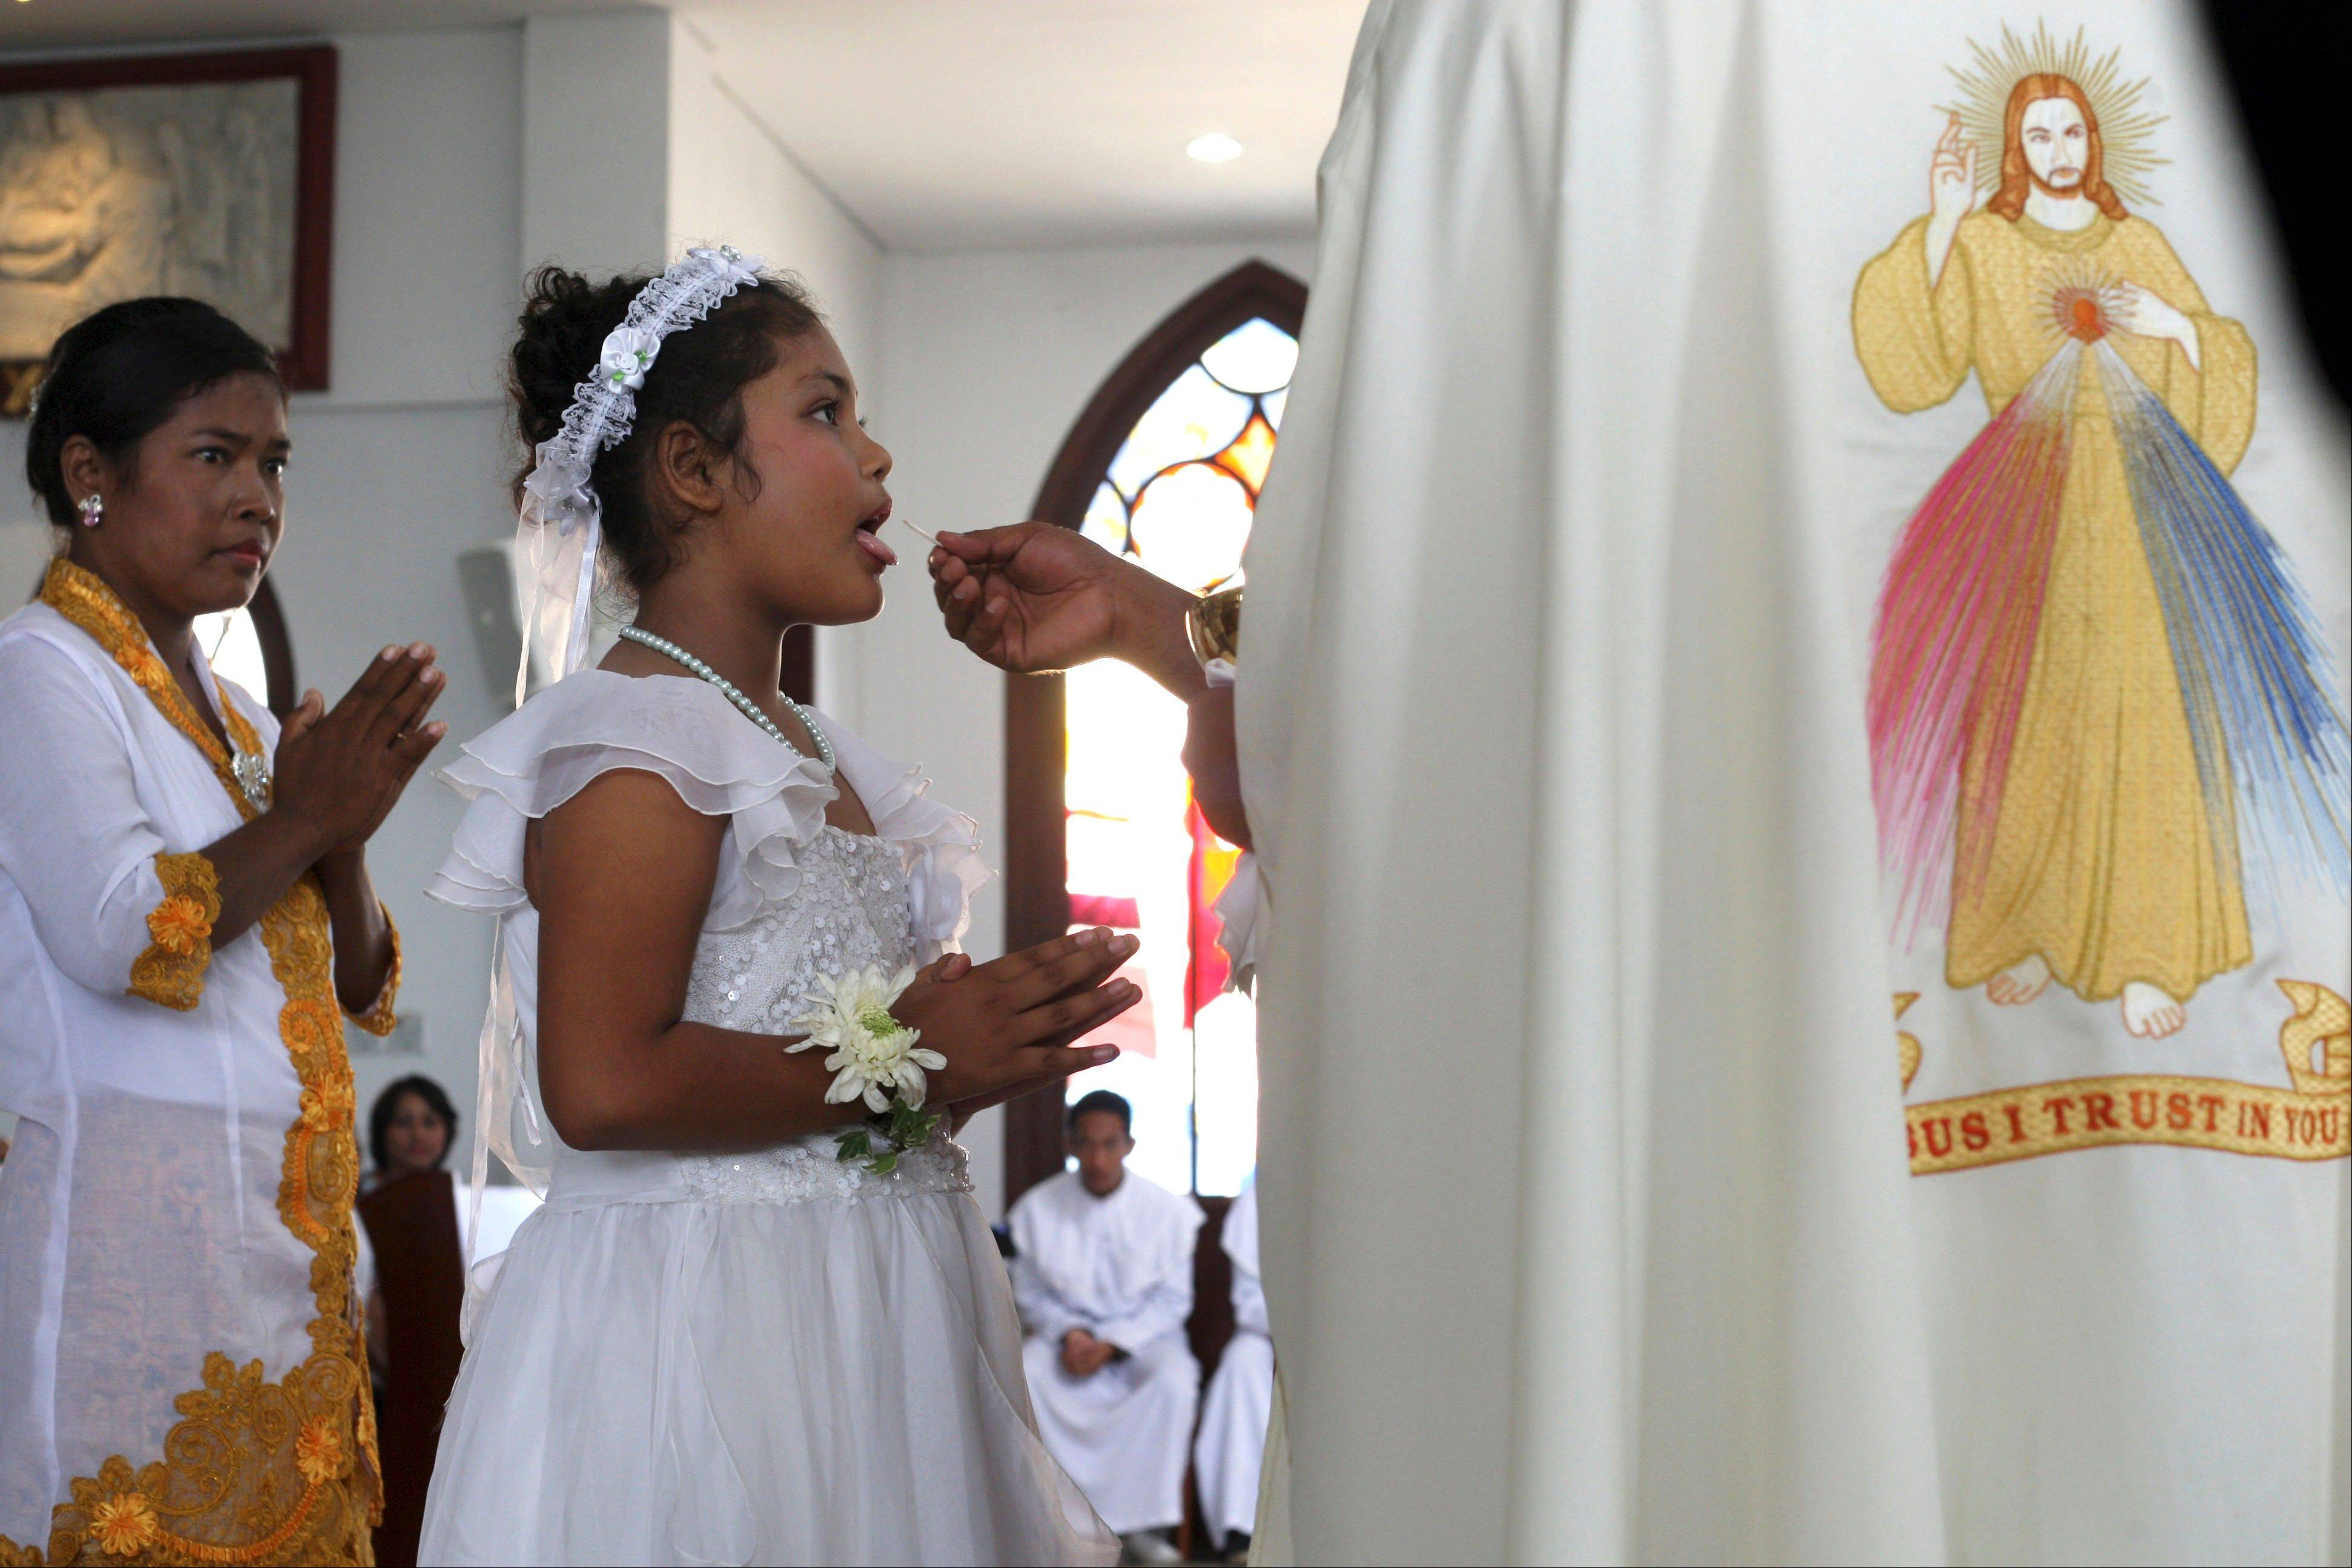 A girl receives communion during a mass for receiving the first communion at Catholic church in Nusa Dua, Bali, Indonesia. Indonesia�s president has accepted a statesmanship award ofrom a U.S. interfaith foundation that says it hopes to encourage him to promote freedom of worship and tolerance in the world�s most populous Muslim-majority nation.